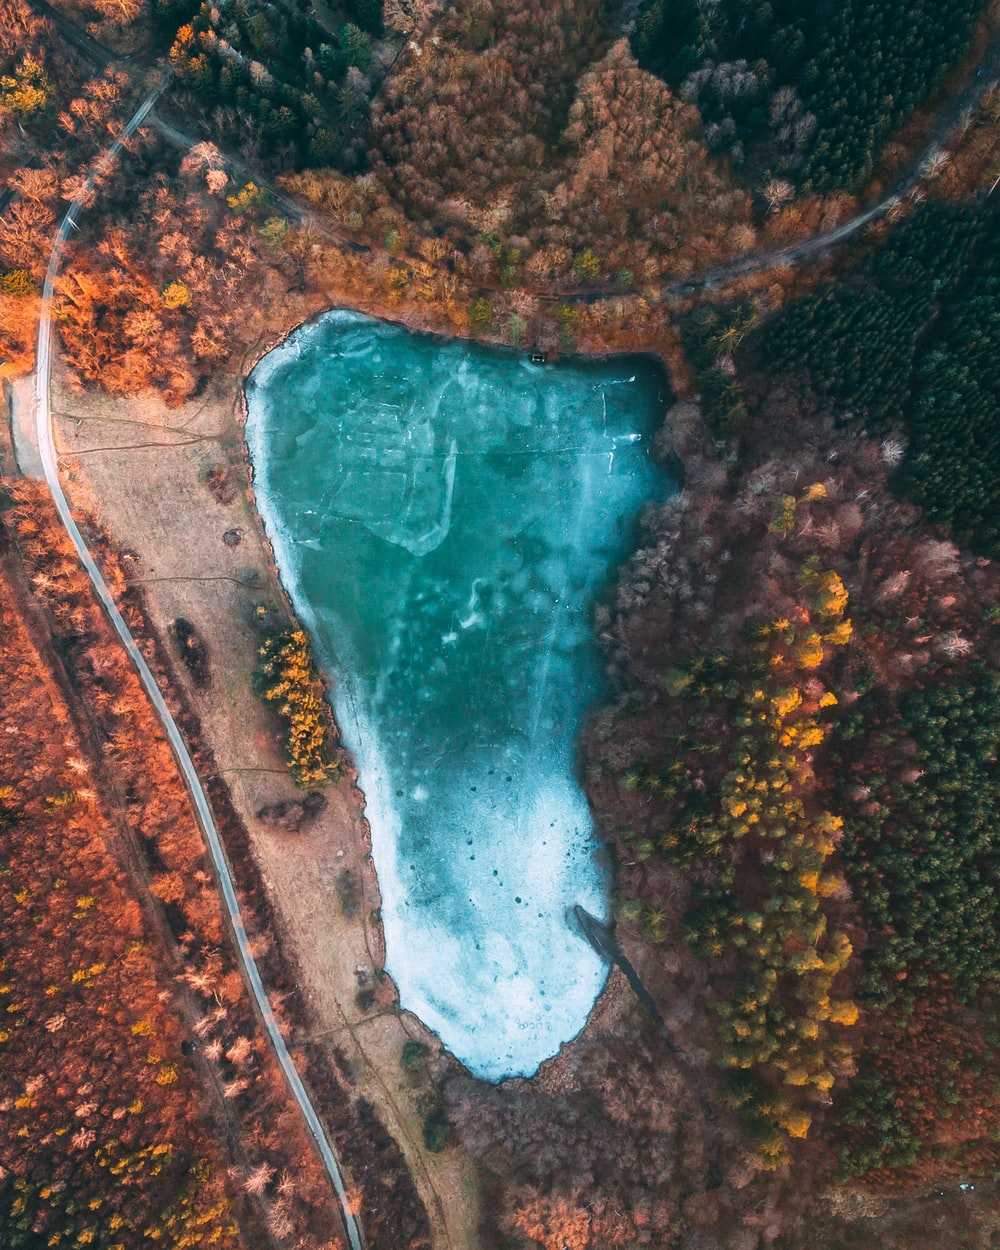 aerial view of lake surrounded by trees during daytime